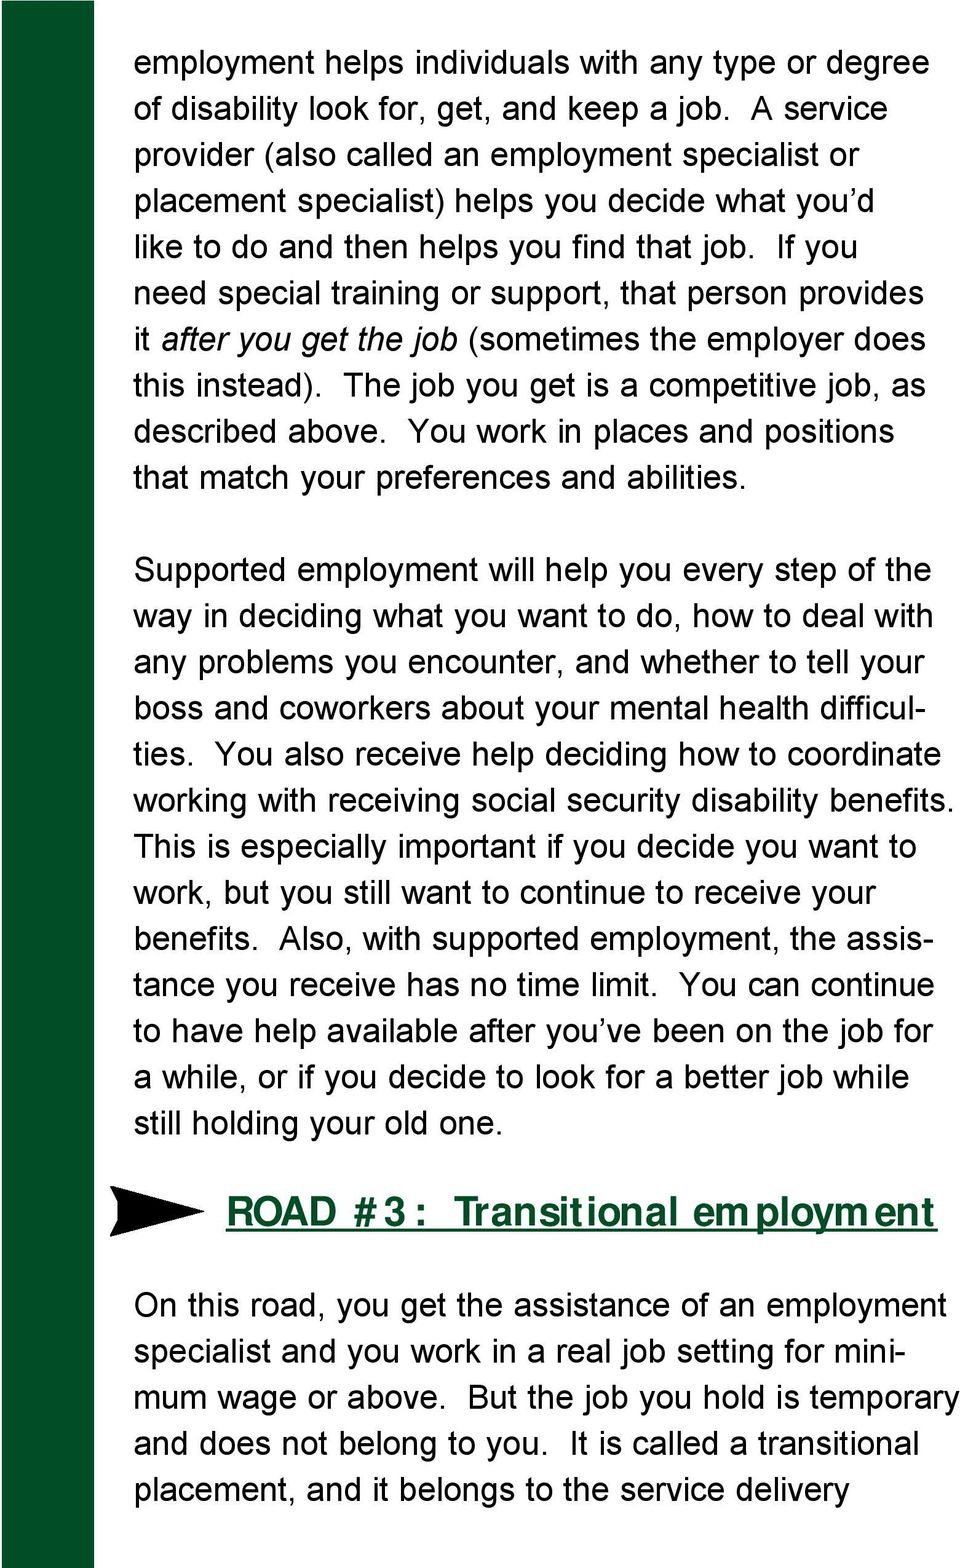 If you need special training or support, that person provides it after you get the job (sometimes the employer does this instead). The job you get is a competitive job, as described above.